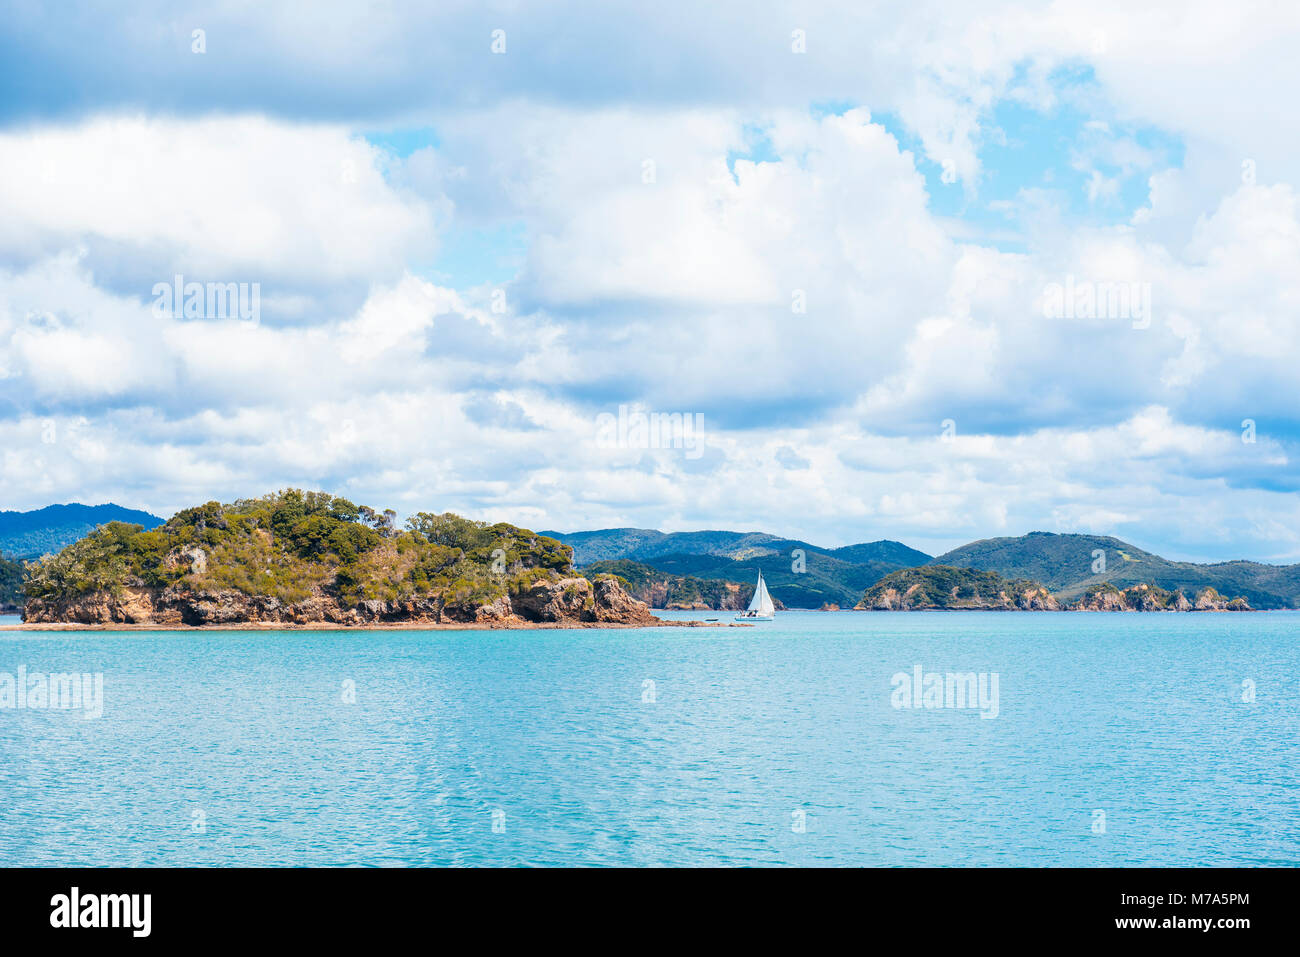 Yacht in the Bay of Islands, North Island, New Zealand - Stock Image